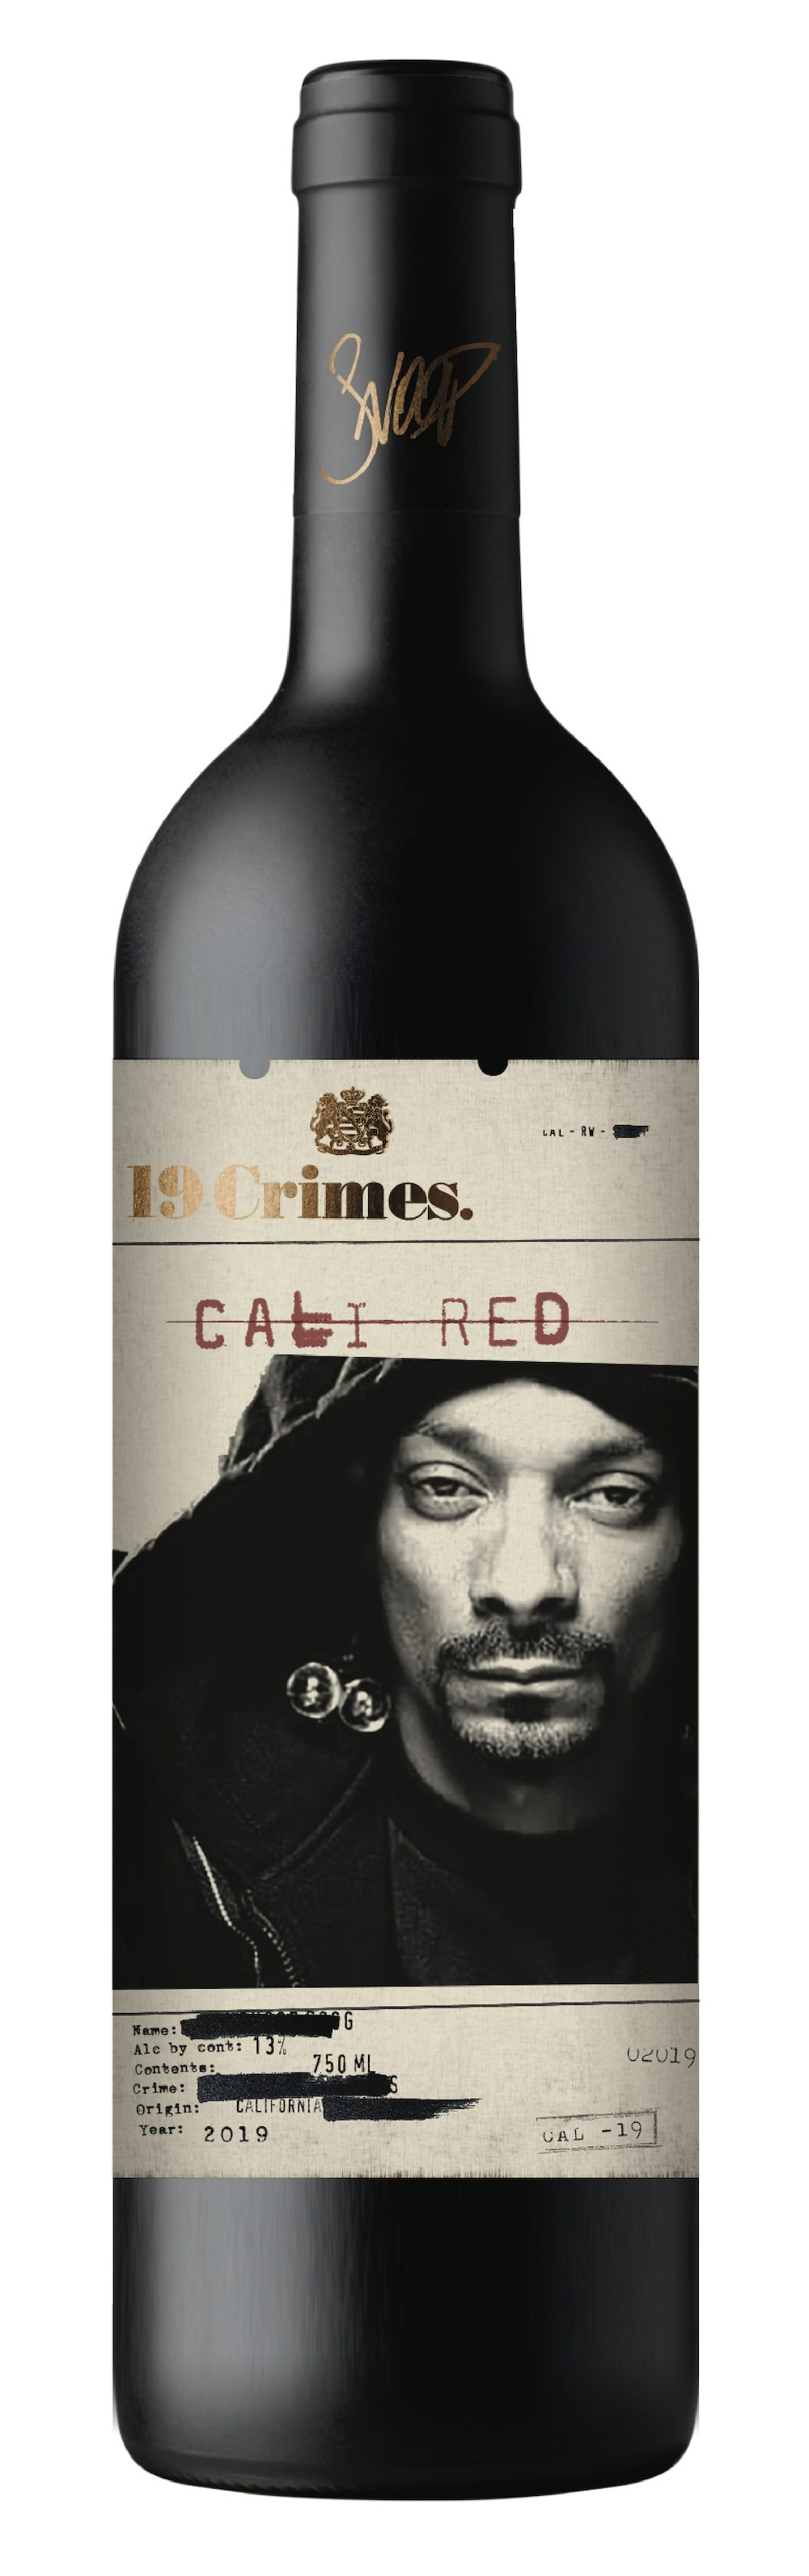 """Snoop Cali Red"" by 19 Crimes Snoop Dogg"